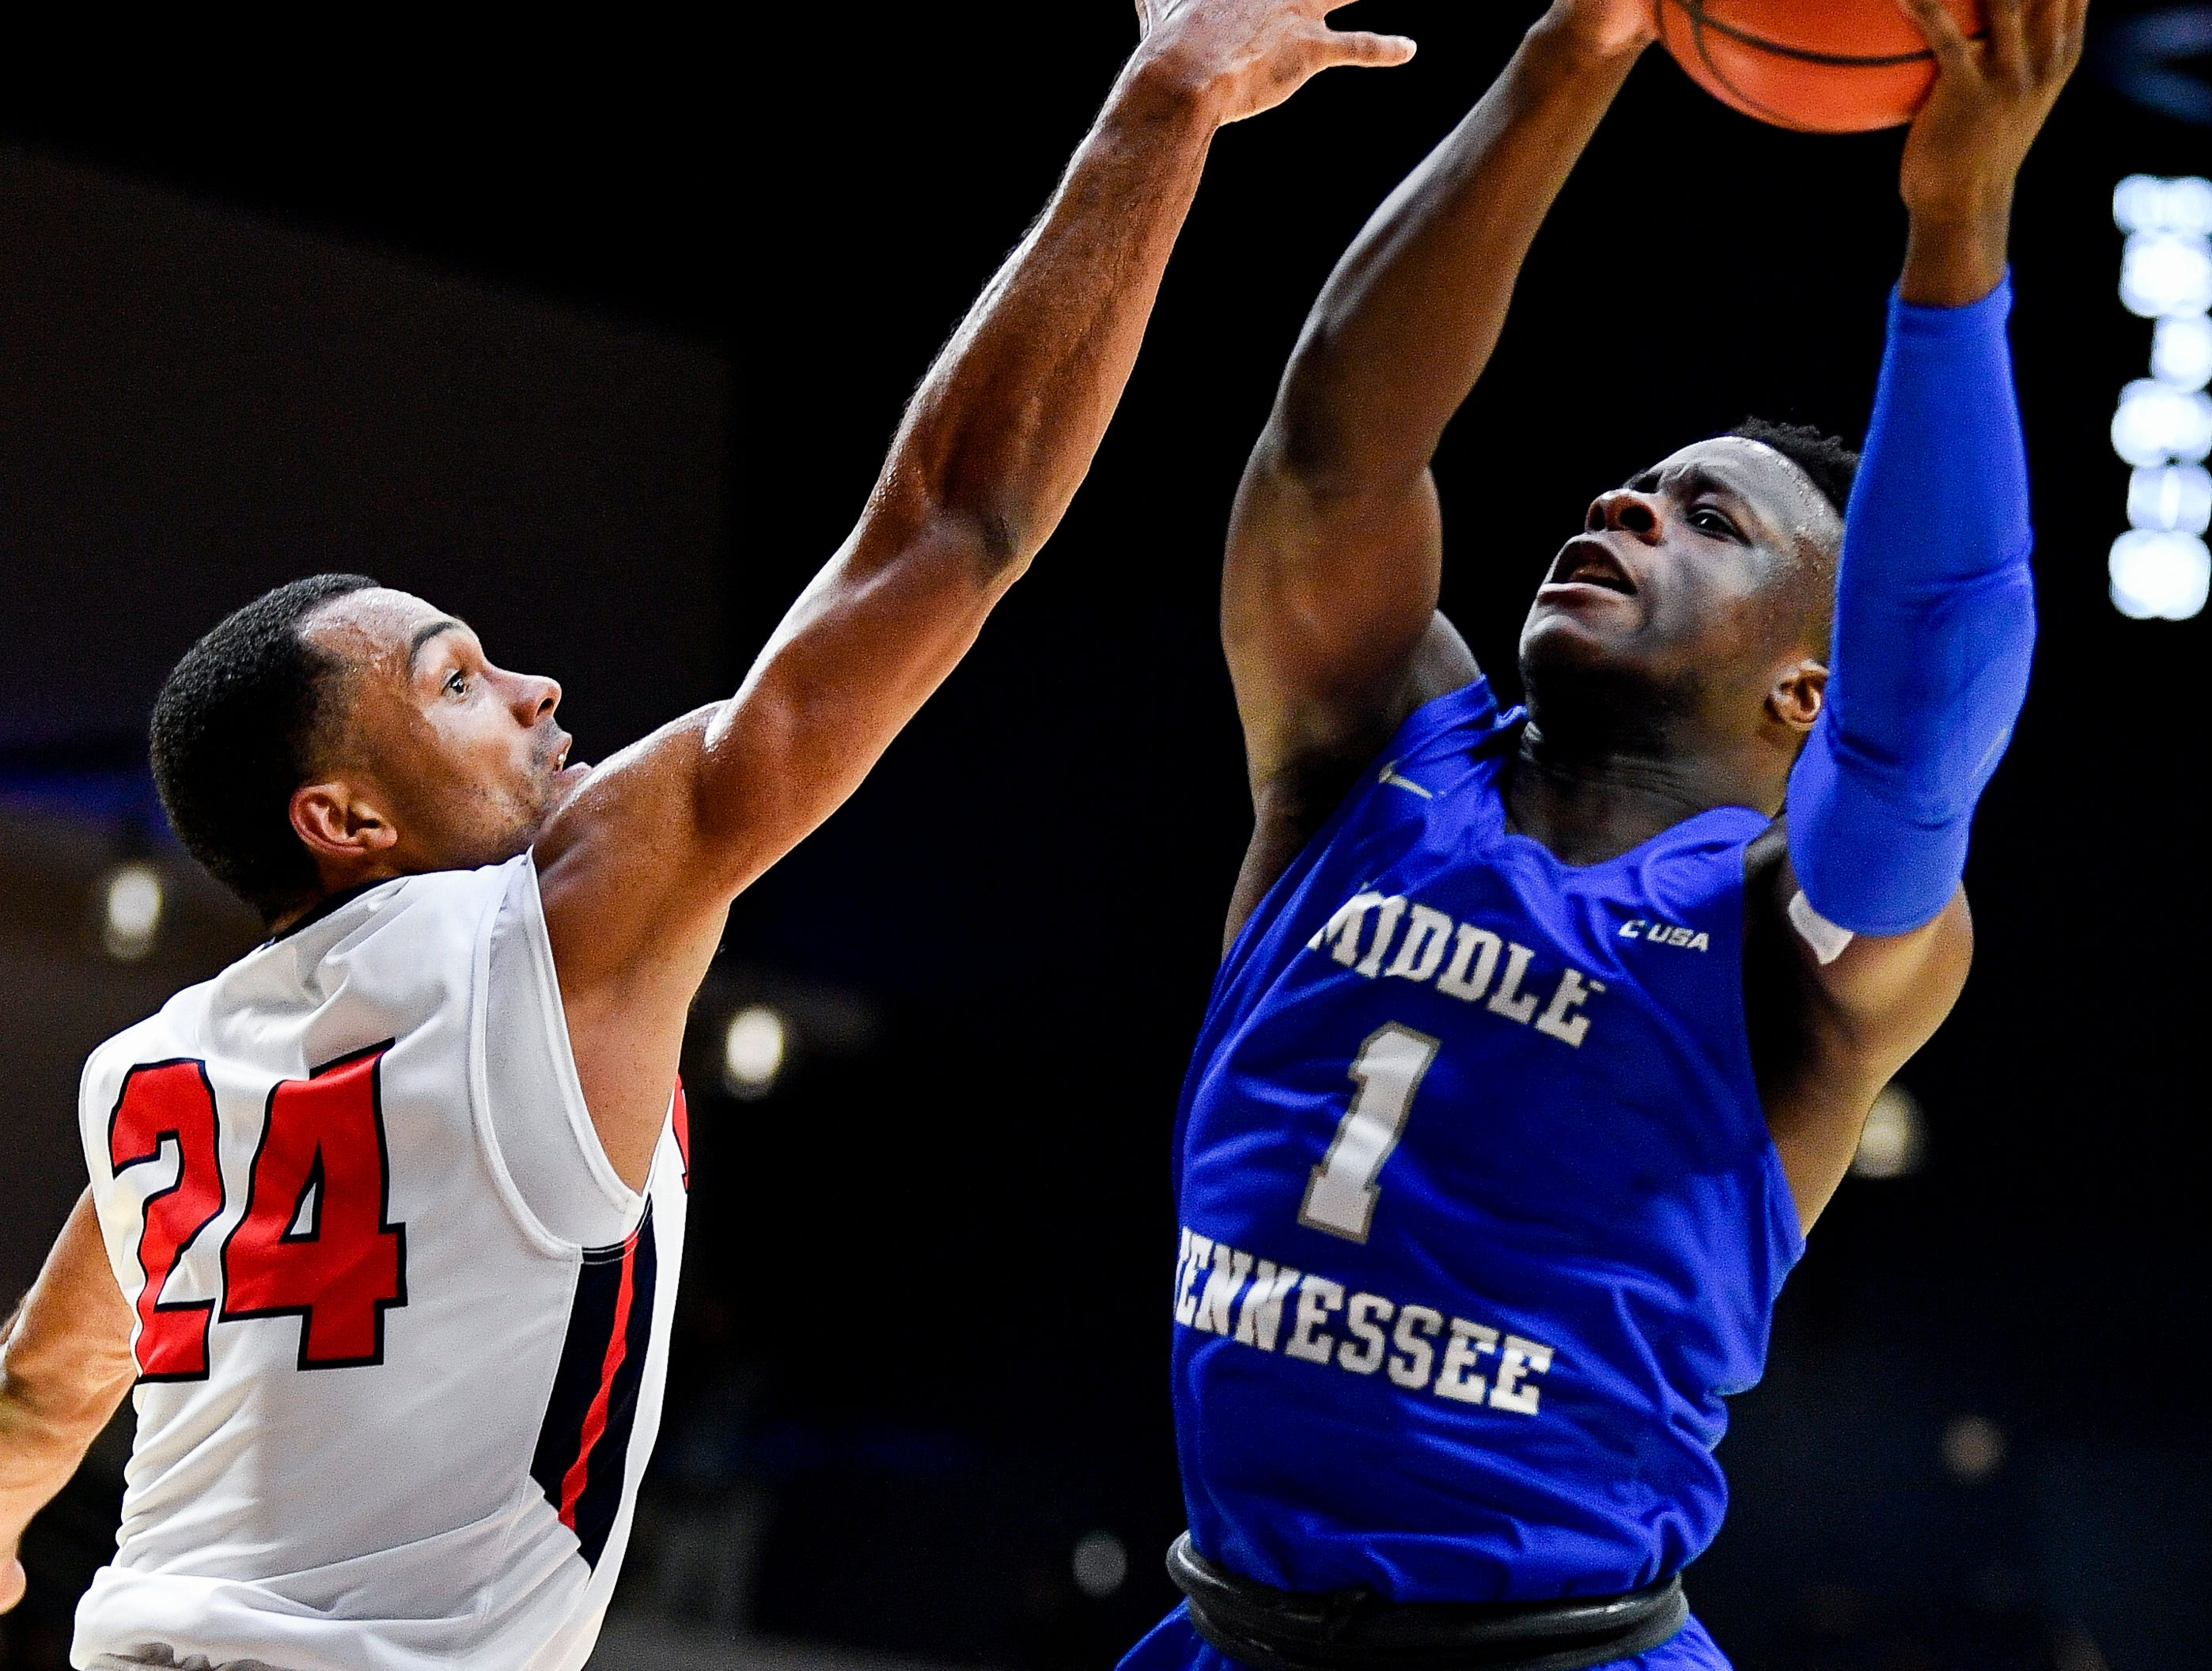 MTSU guard Junior Farquhar (1) battles Belmont guard Michael Benkert (24) during the first half at the Curb Event Center Arena in Nashville, Tenn., Monday, Nov. 12, 2018.